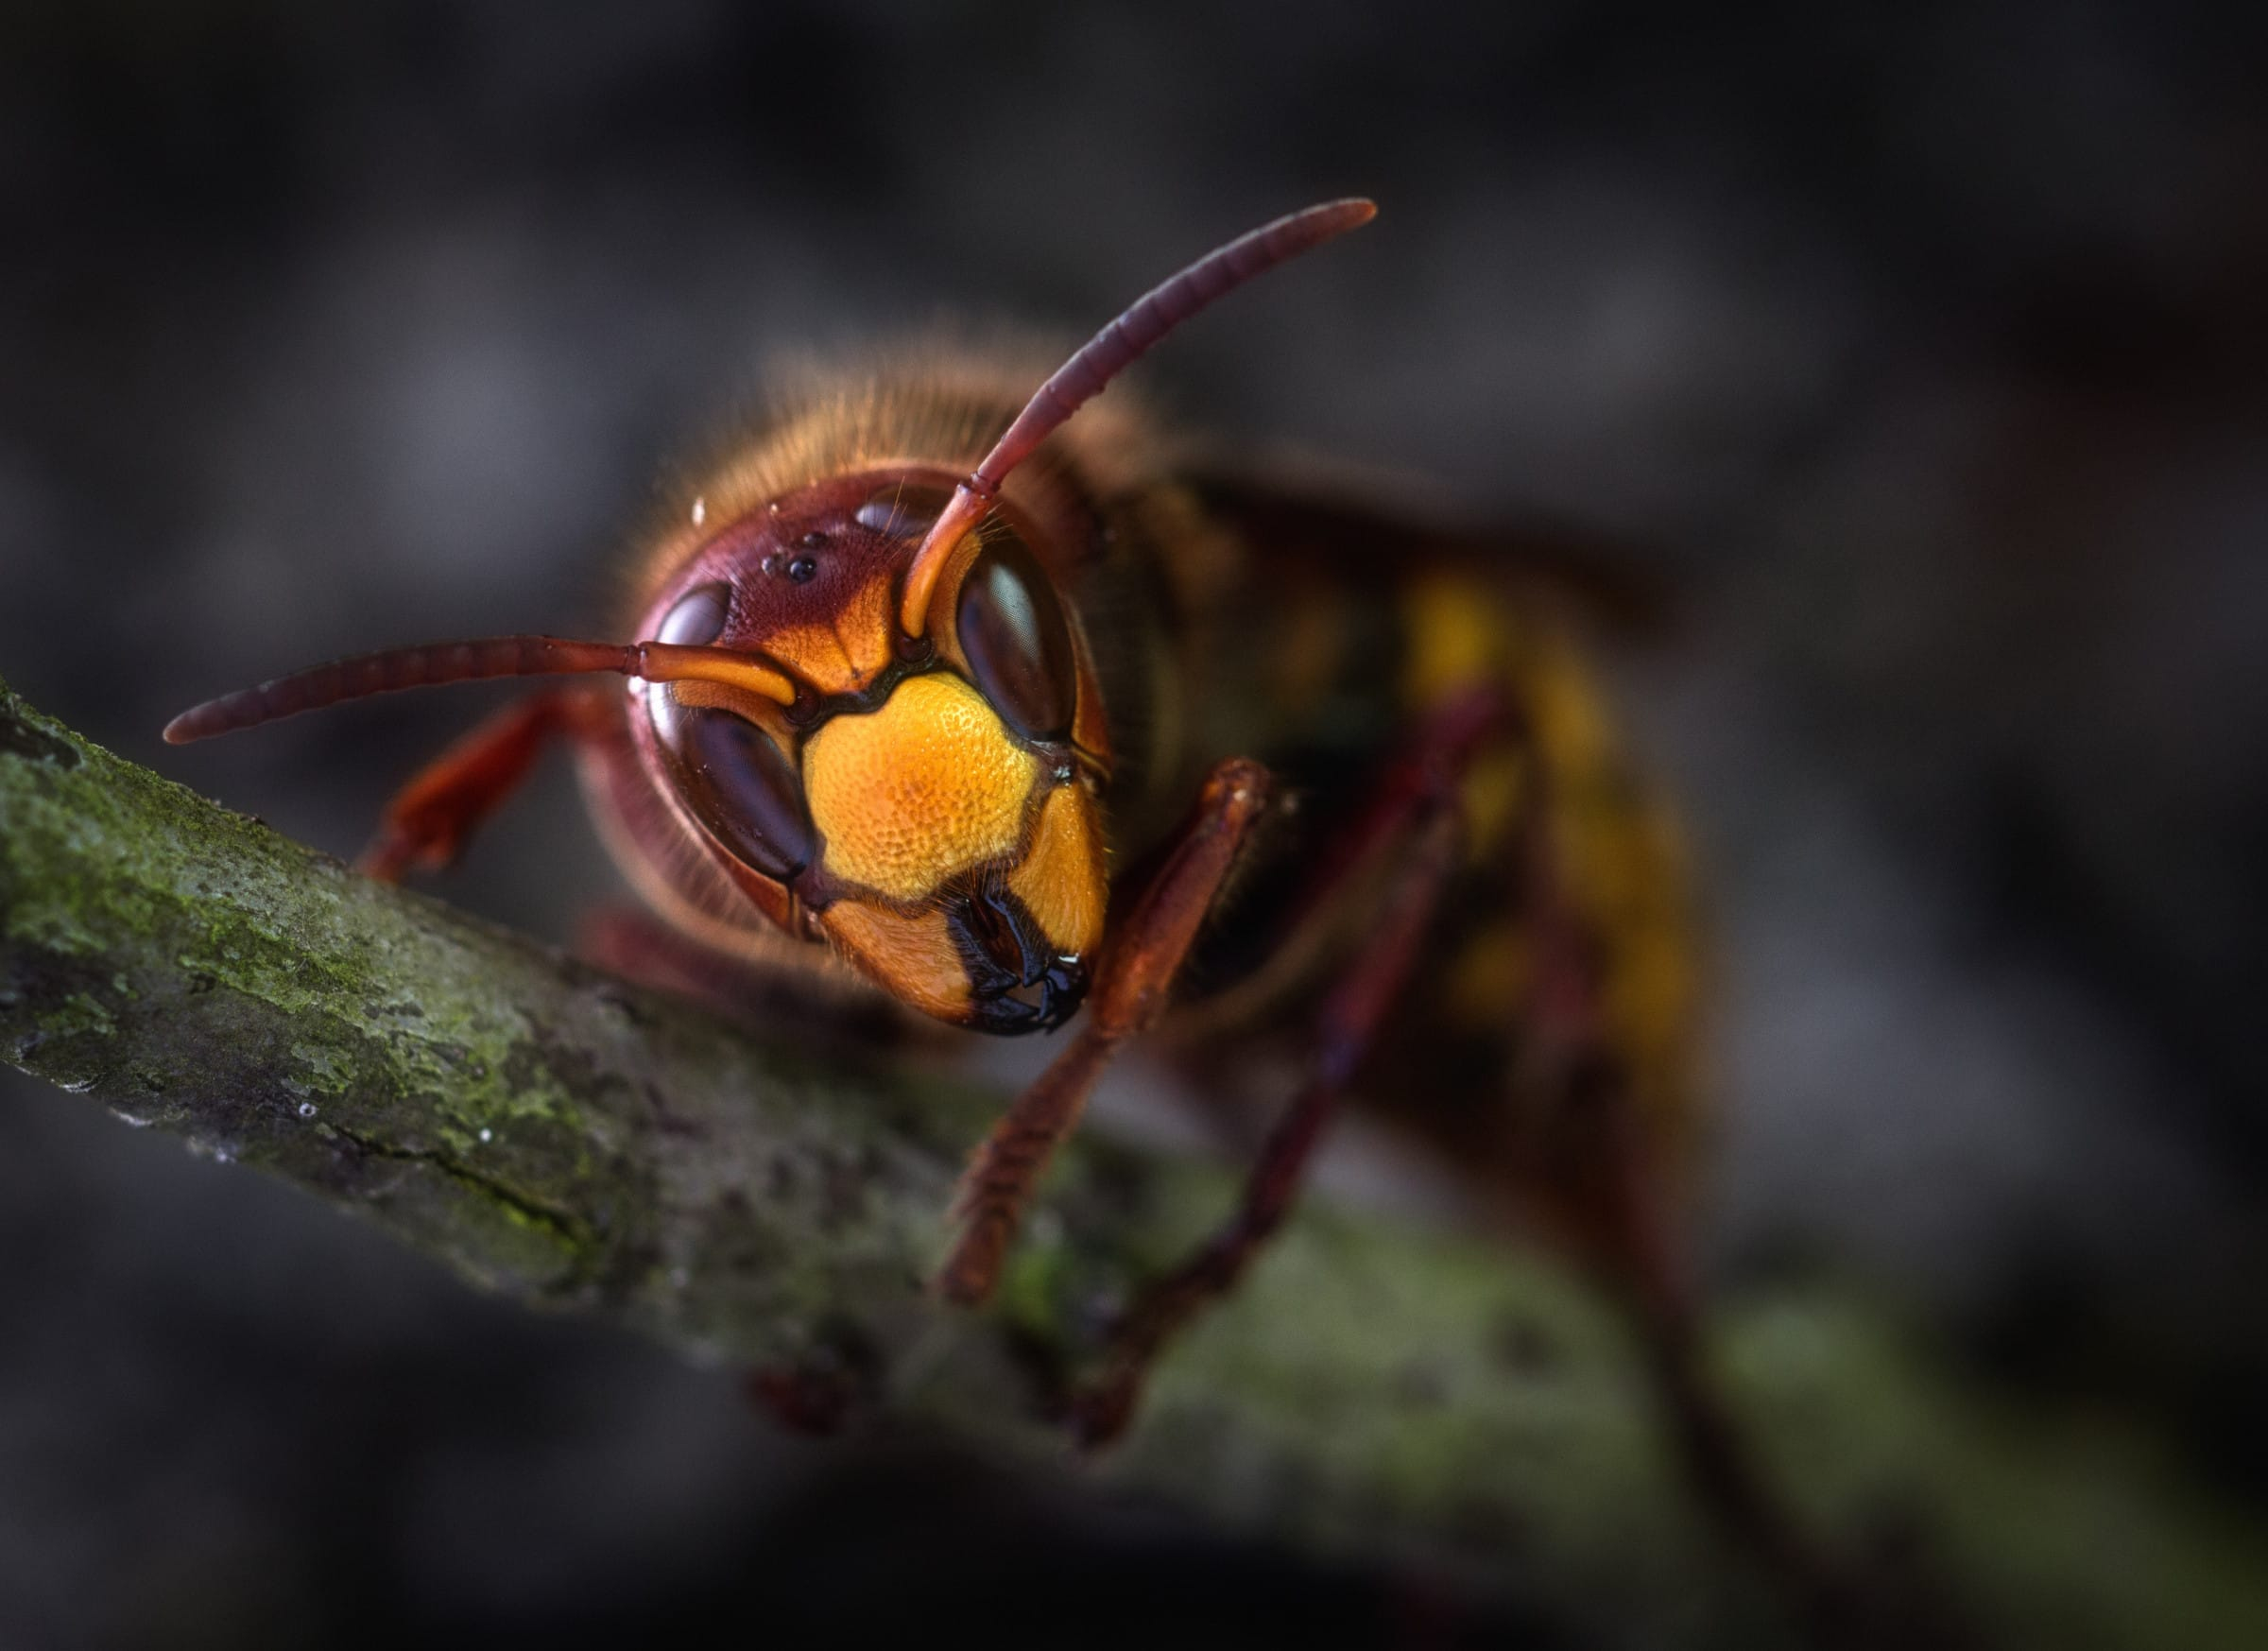 April's Pest of the Month: Wasps